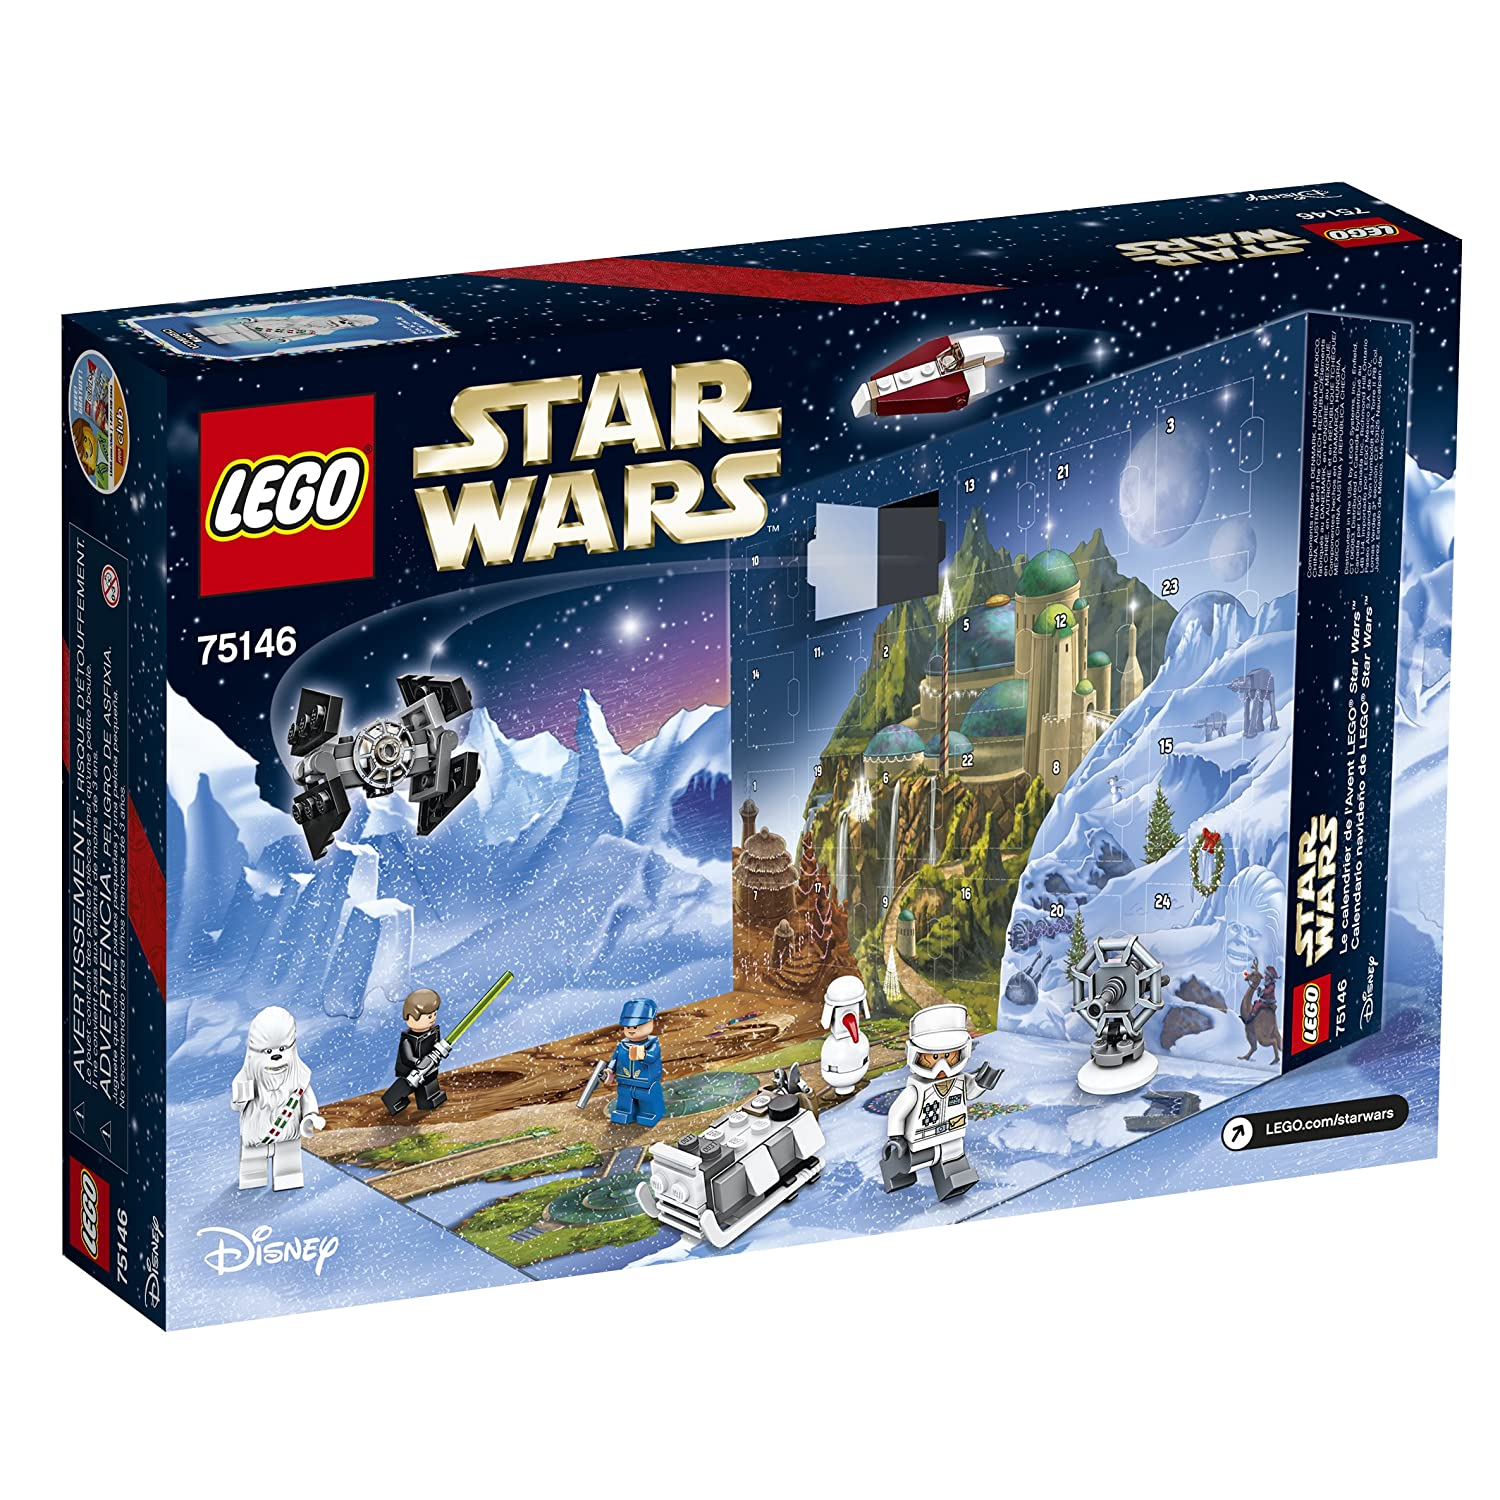 amazoncom lego star wars 75146 advent calendar building kit 282 piece discontinued by manufacturer toys games